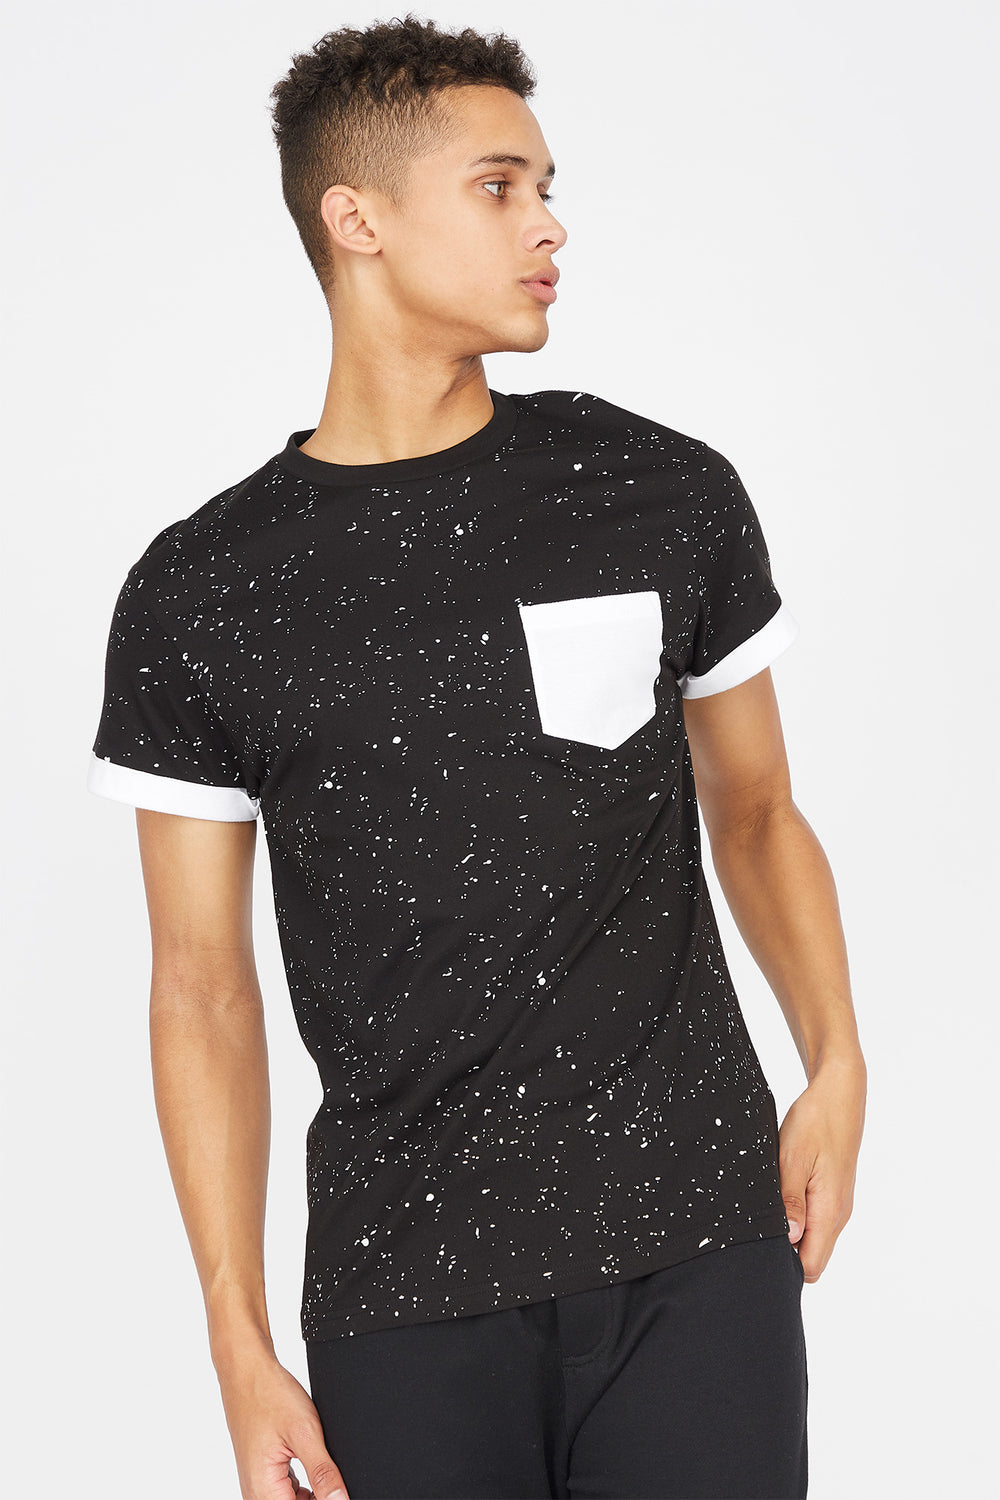 Contrast Splatter Pocket T-Shirt Black